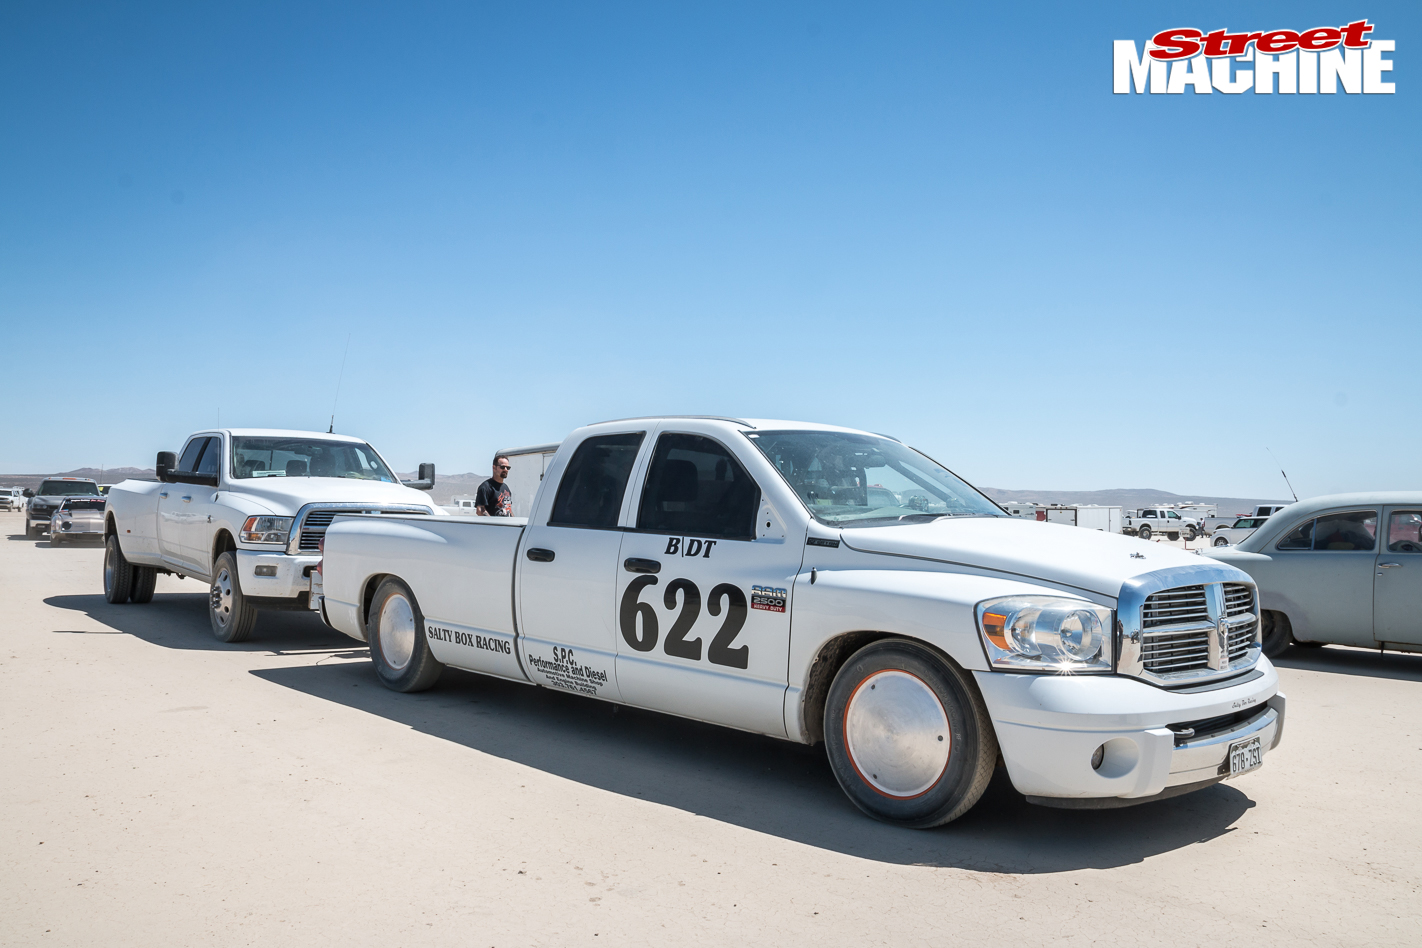 Dodge -Ram -El -Mirage -Salty -Box -Racing -0591